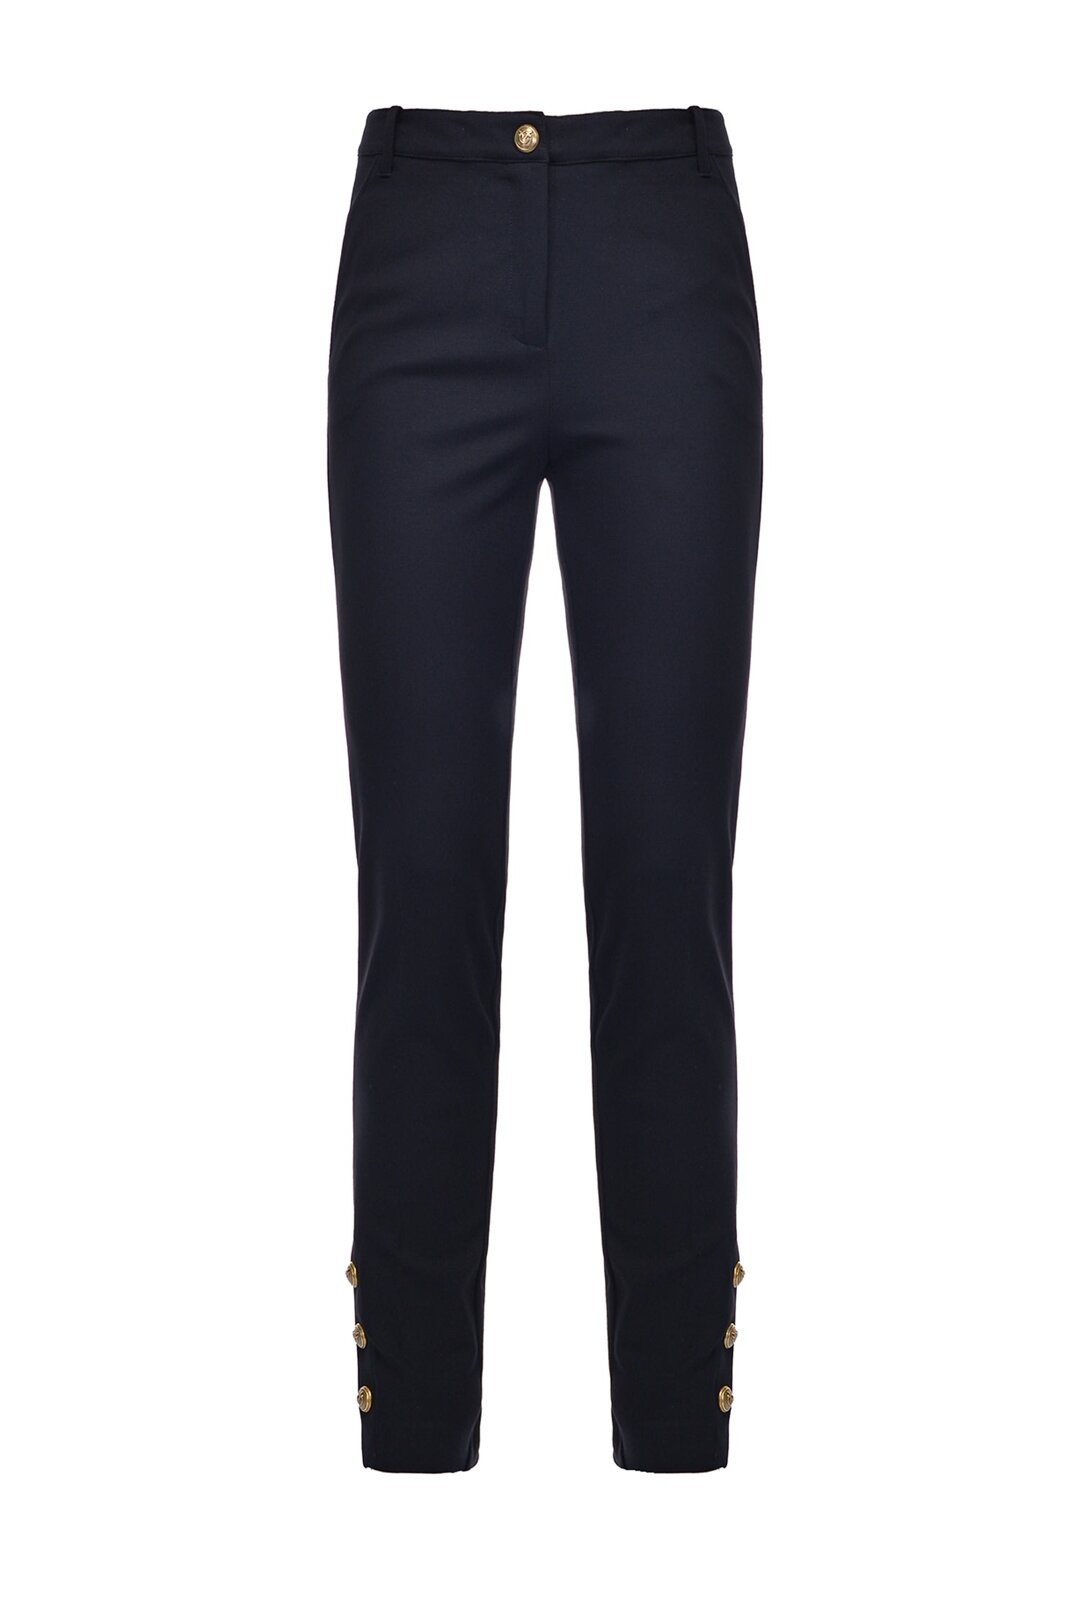 Fitted Pants With Buttons At The Bottom - Pinko